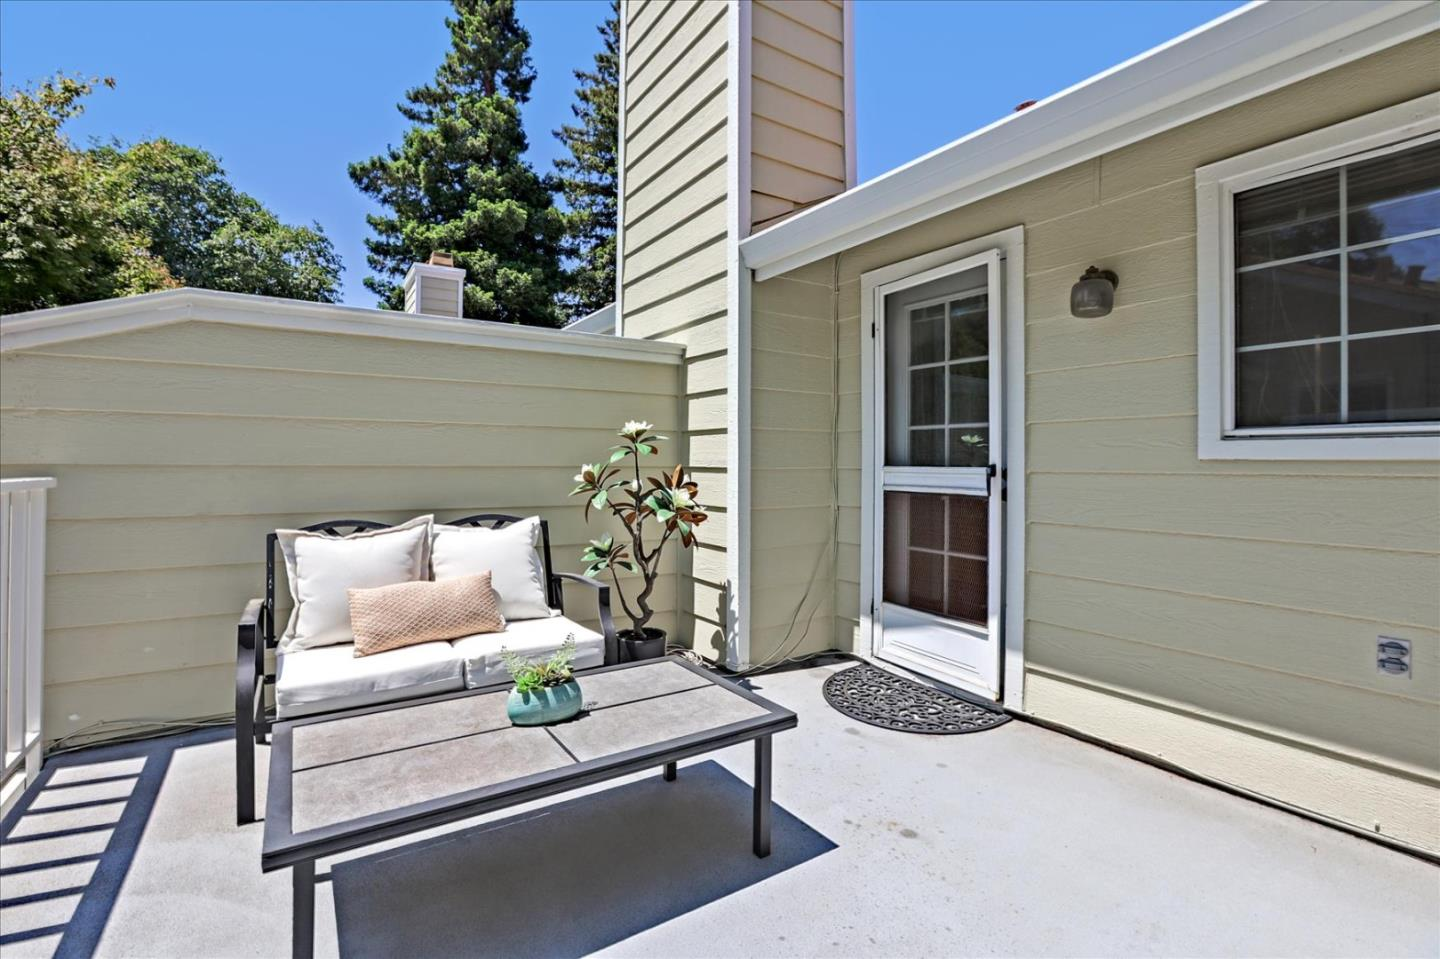 The epitome of curb appeal, this rare end unit is set in highly coveted community with just one neighbor. Luxurious yet livable, this turnkey townhome affords an open concept with custom fixtures and finishes throughout. Freshly painted and appointed with new vinyl flooring/carpet, this 3bed, 2.5bath home offers ample windows and a skylight to invite warmth and light. Decked in S/S appliances and granite counters, a modern kitchen flows into a lavish family room that contains a marble fireplace and French doors that reveal a spacious backyard patio. Upstairs is complete with mirrored closets,Jack & Jill bath, and laundry, a grand primary suite includes an ensuite bath,French doors, and a private patio. The residence is equipped with a Nest thermostat and attached 2 car garage.Set in a storybook neighborhood w/ lush dog walking paths, the HOA includes garbage & insurance. Close to Google, NASA & top tech campuses, its centrally located near light rail,Caltrain & downtown MV. This is it!